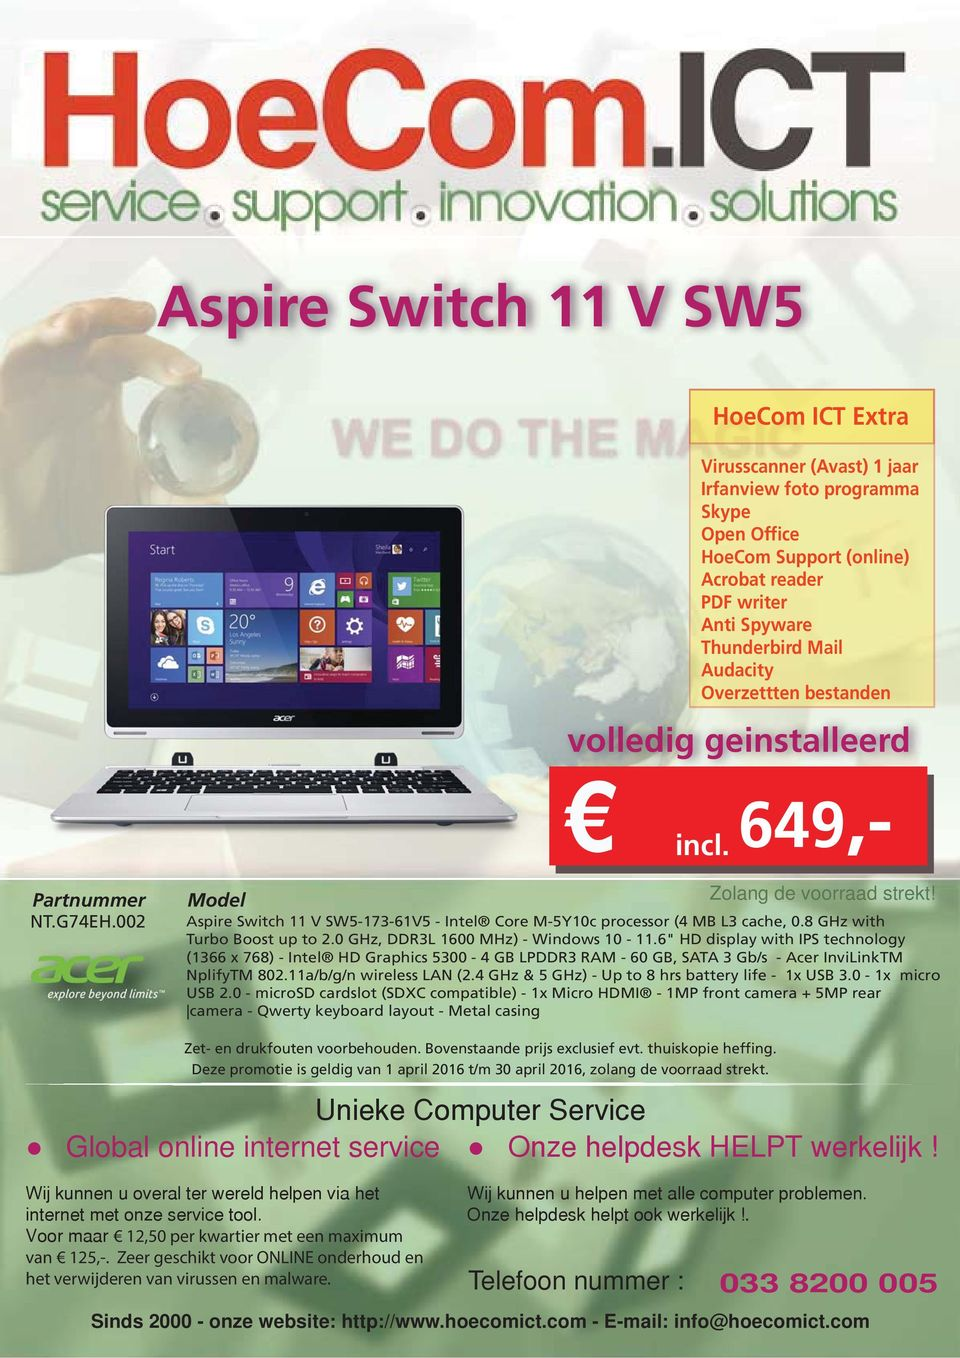 "6"" HD display with IPS technology (1366 x 768) - Intel HD Graphics 5300-4 GB LPDDR3 RAM - 60 GB, SATA 3 Gb/s - Acer InviLinkTM NplifyTM 802."